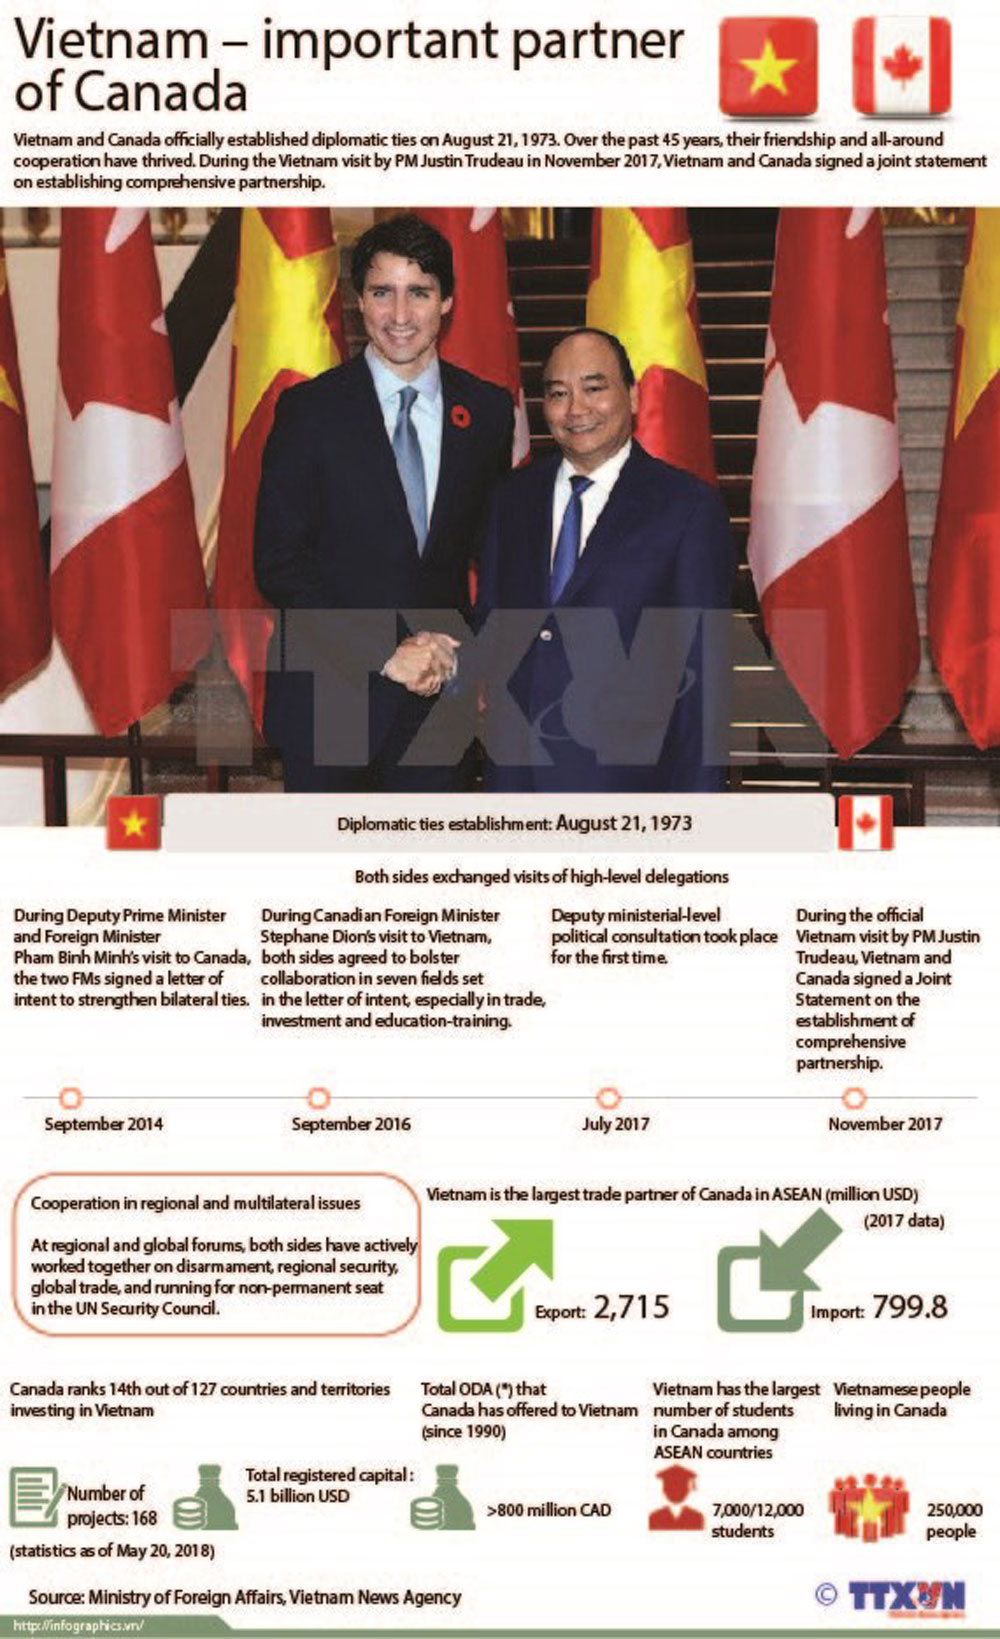 Vietnam, important partner, Canada, diplomatic ties, all-around cooperation, friendship relation